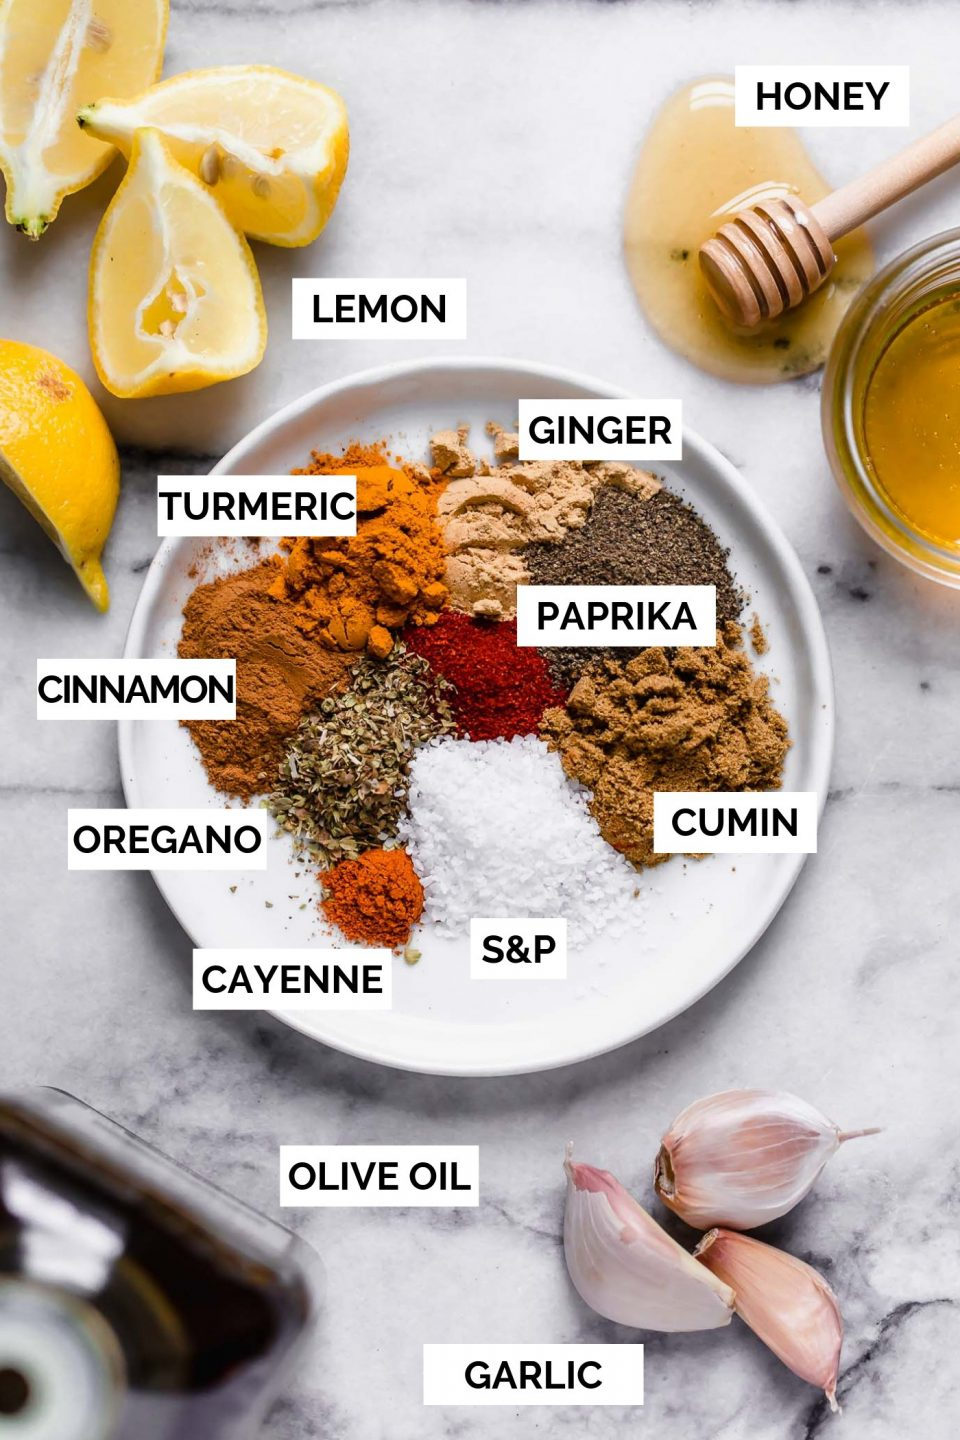 An easy shawarma marinade recipe filled with shawarma seasoning (cumin, paprika, cinnamon, ginger, oregano, turmeric!). The warmth in the middle eastern spices is offset by a little bit of lemon & honey to create absolutely addictive flavor. Use it to make easy grilled shawarma chicken or a hummus bowl! #playswellwithbutter #shawarma #shawarmamarinade #shawarmarecipe #shawarmaseasoning #shawarmachicken #easymarinade #grillingrecipes #chickenmarinade